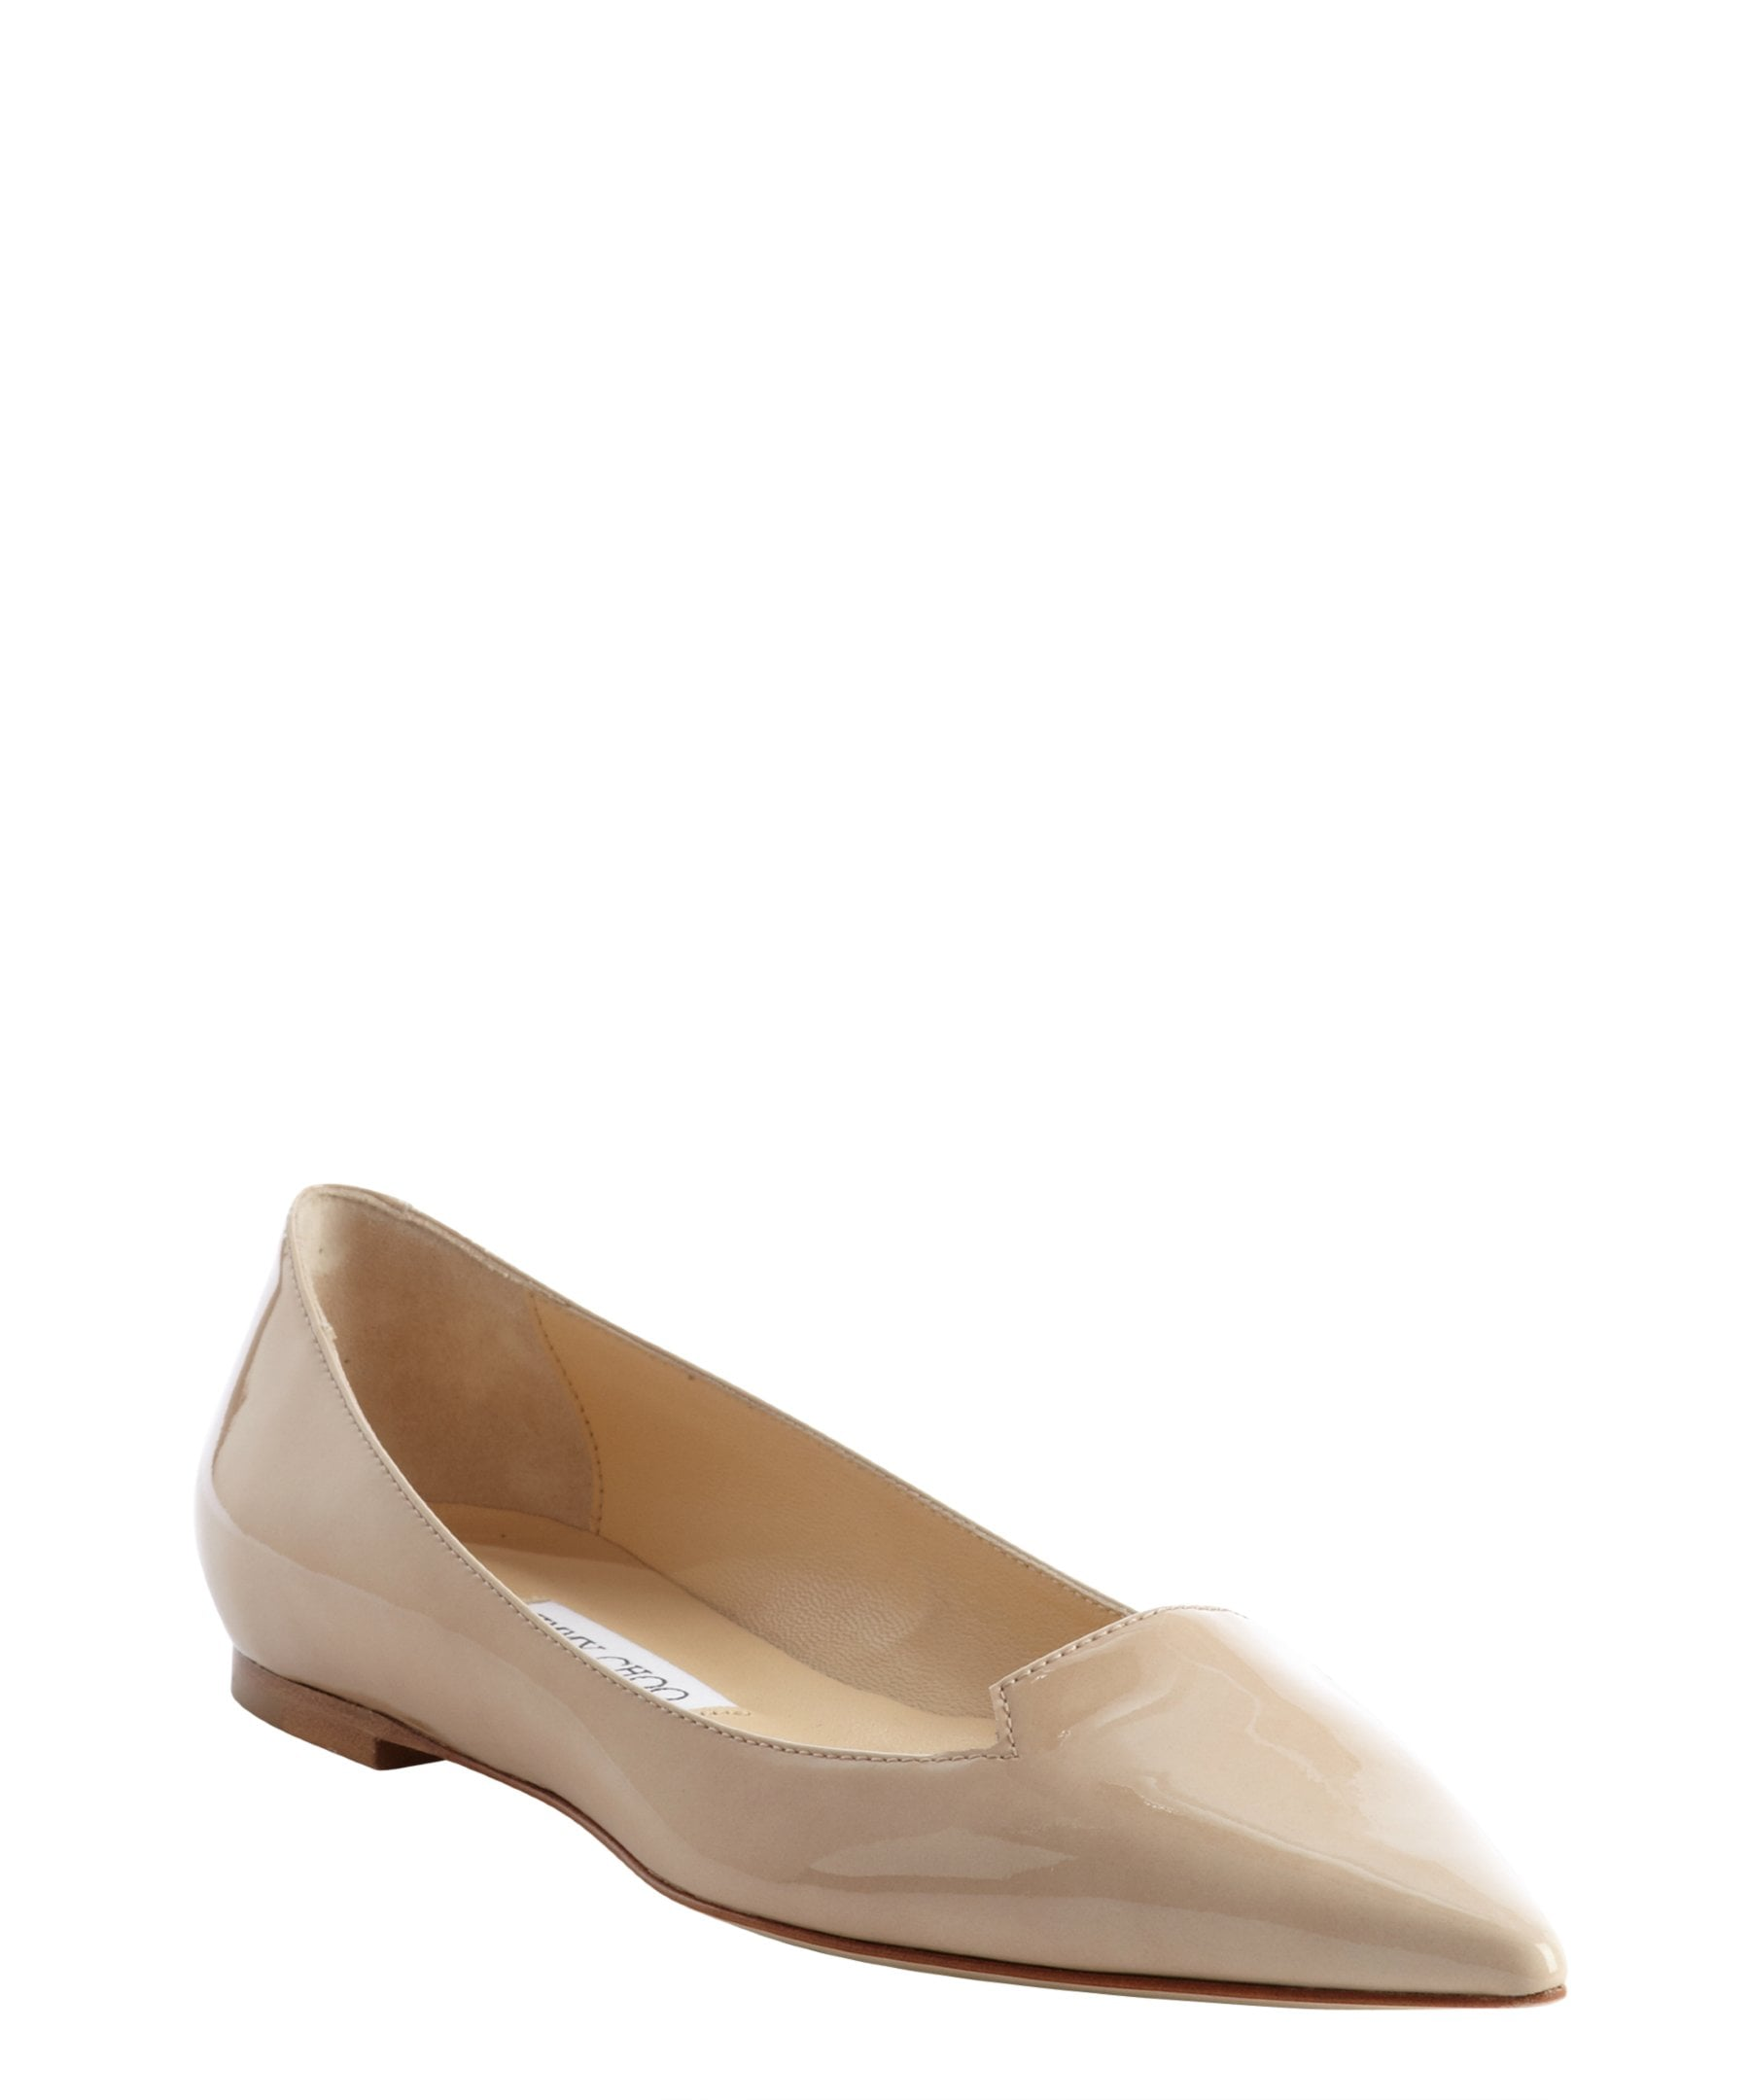 Jimmy Choo Nude Leather Flats